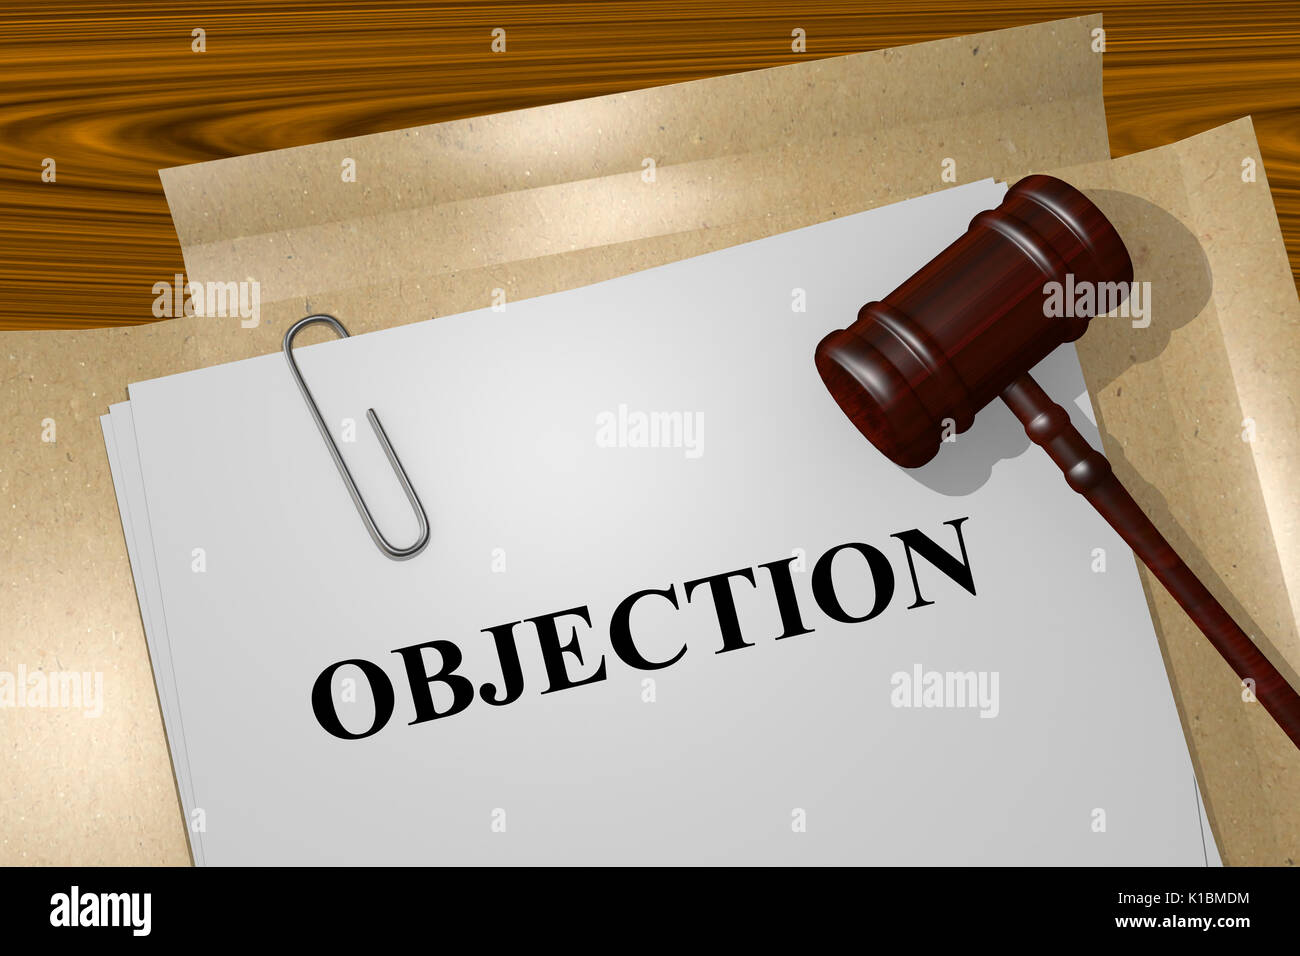 Render illustration of Objection title On Legal Documents - Stock Image